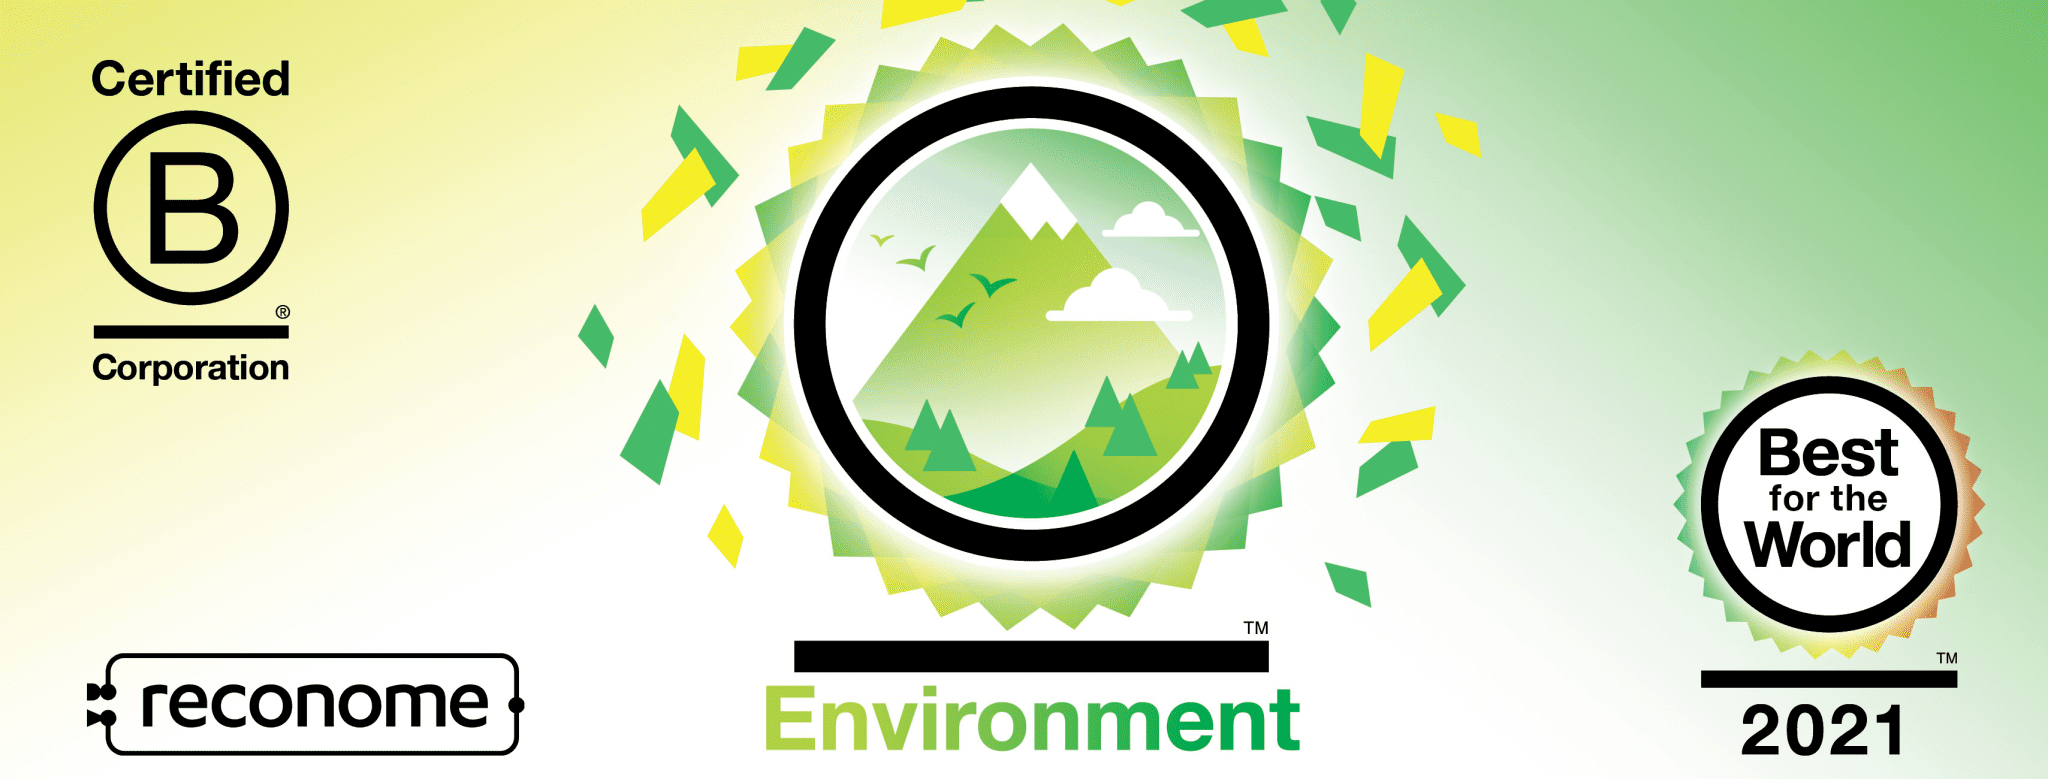 Reconome is Best For The World™ 2021 in the Environment impact area